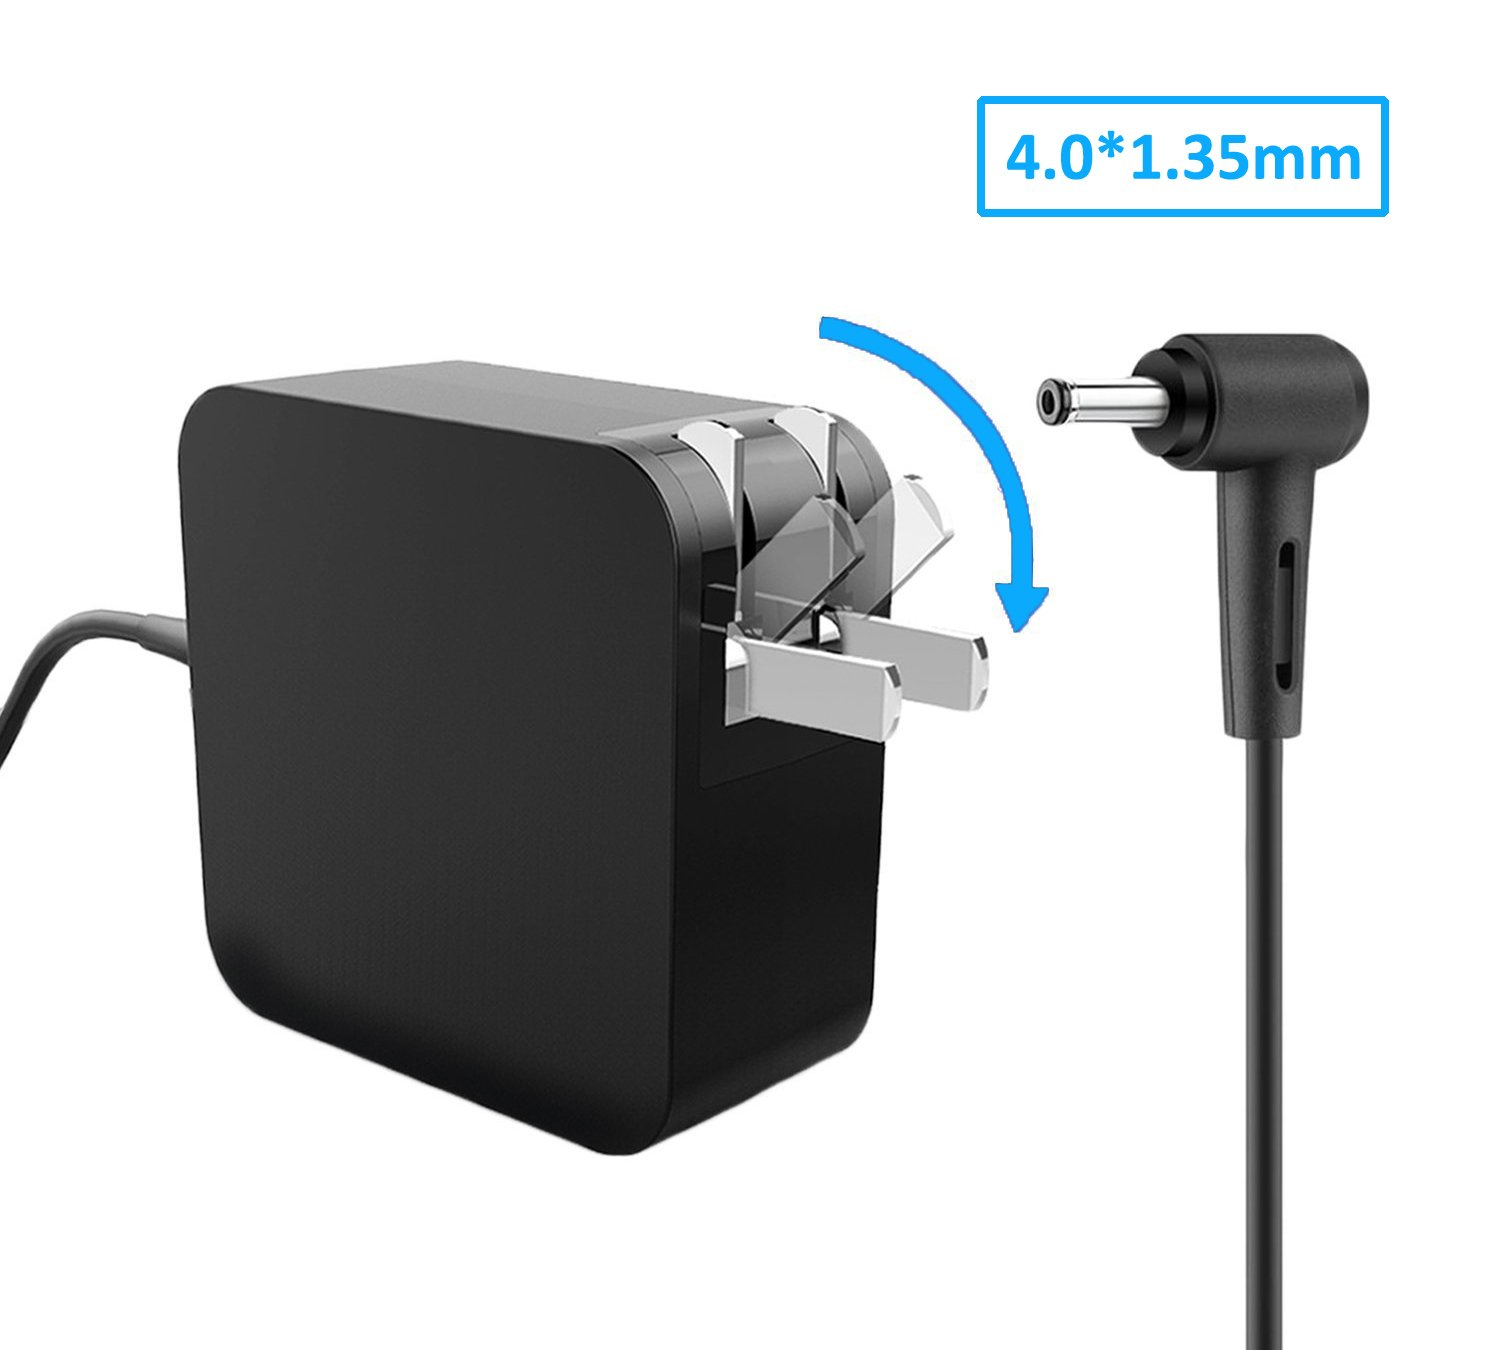 Portable Laptop Power AC Adapter 19V 2.37A 45W Charger for Asus X540 15.6'' Ultra Slim Full HD Notebook Computer, Intel Core i5-5200U 2.2GHz Asus Silm Power Supply